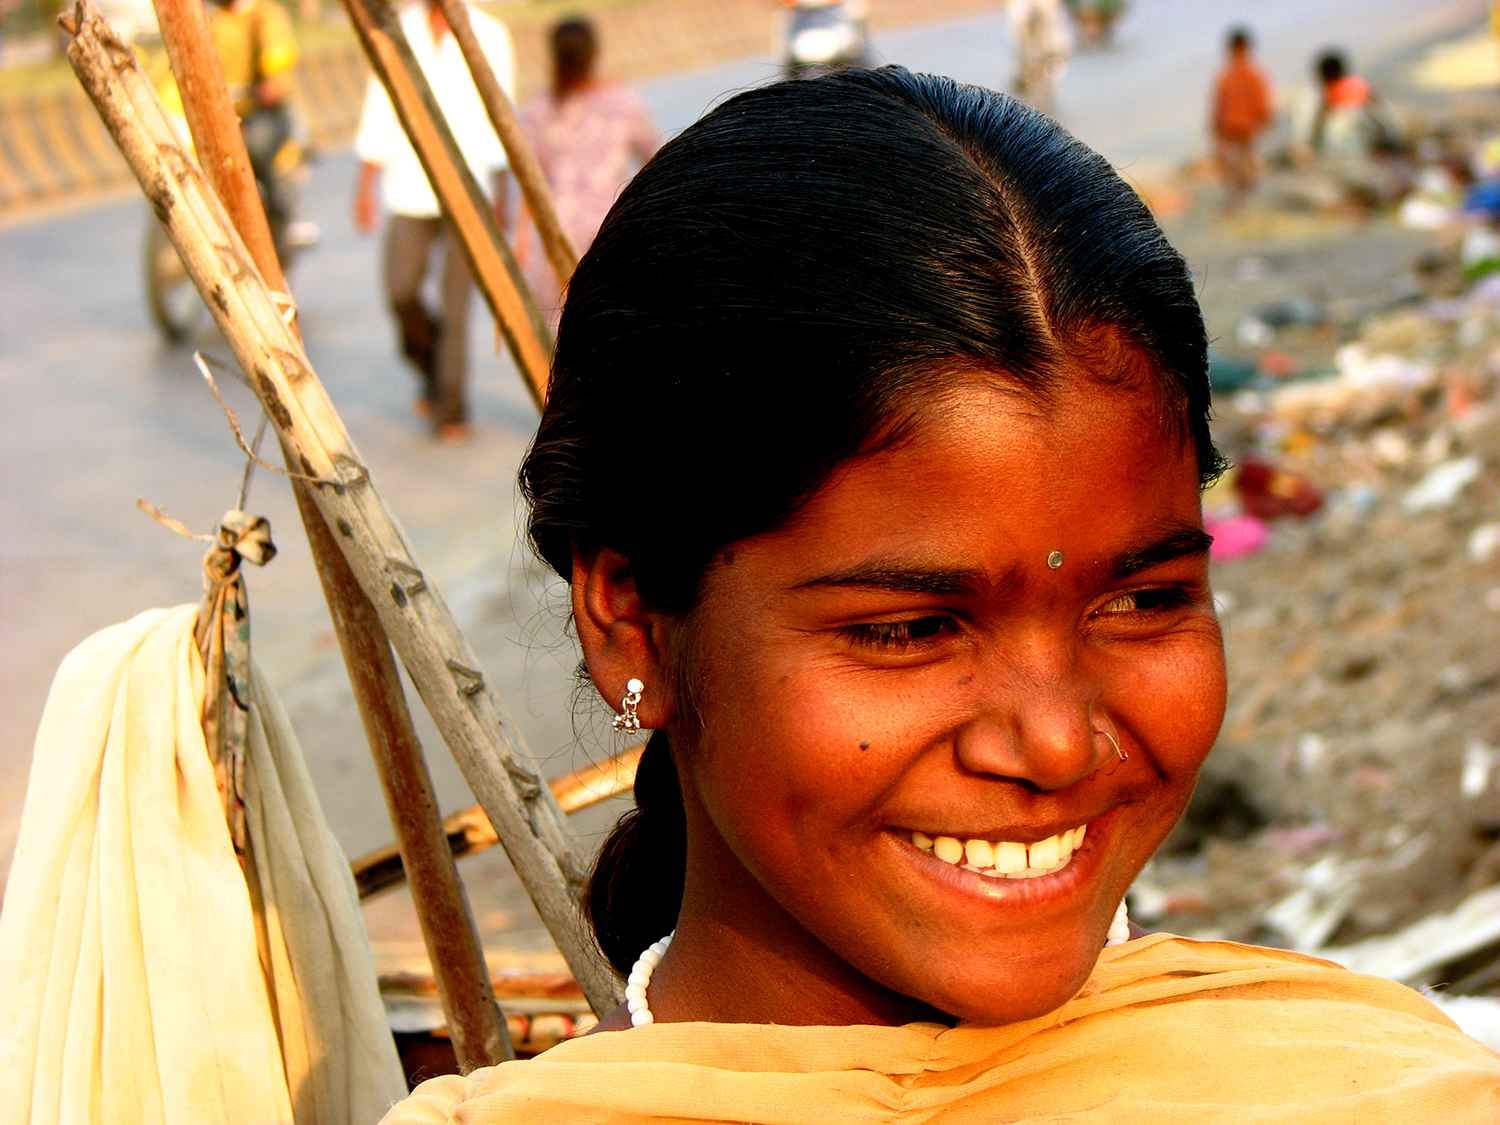 indian woman smiling a radiant smile